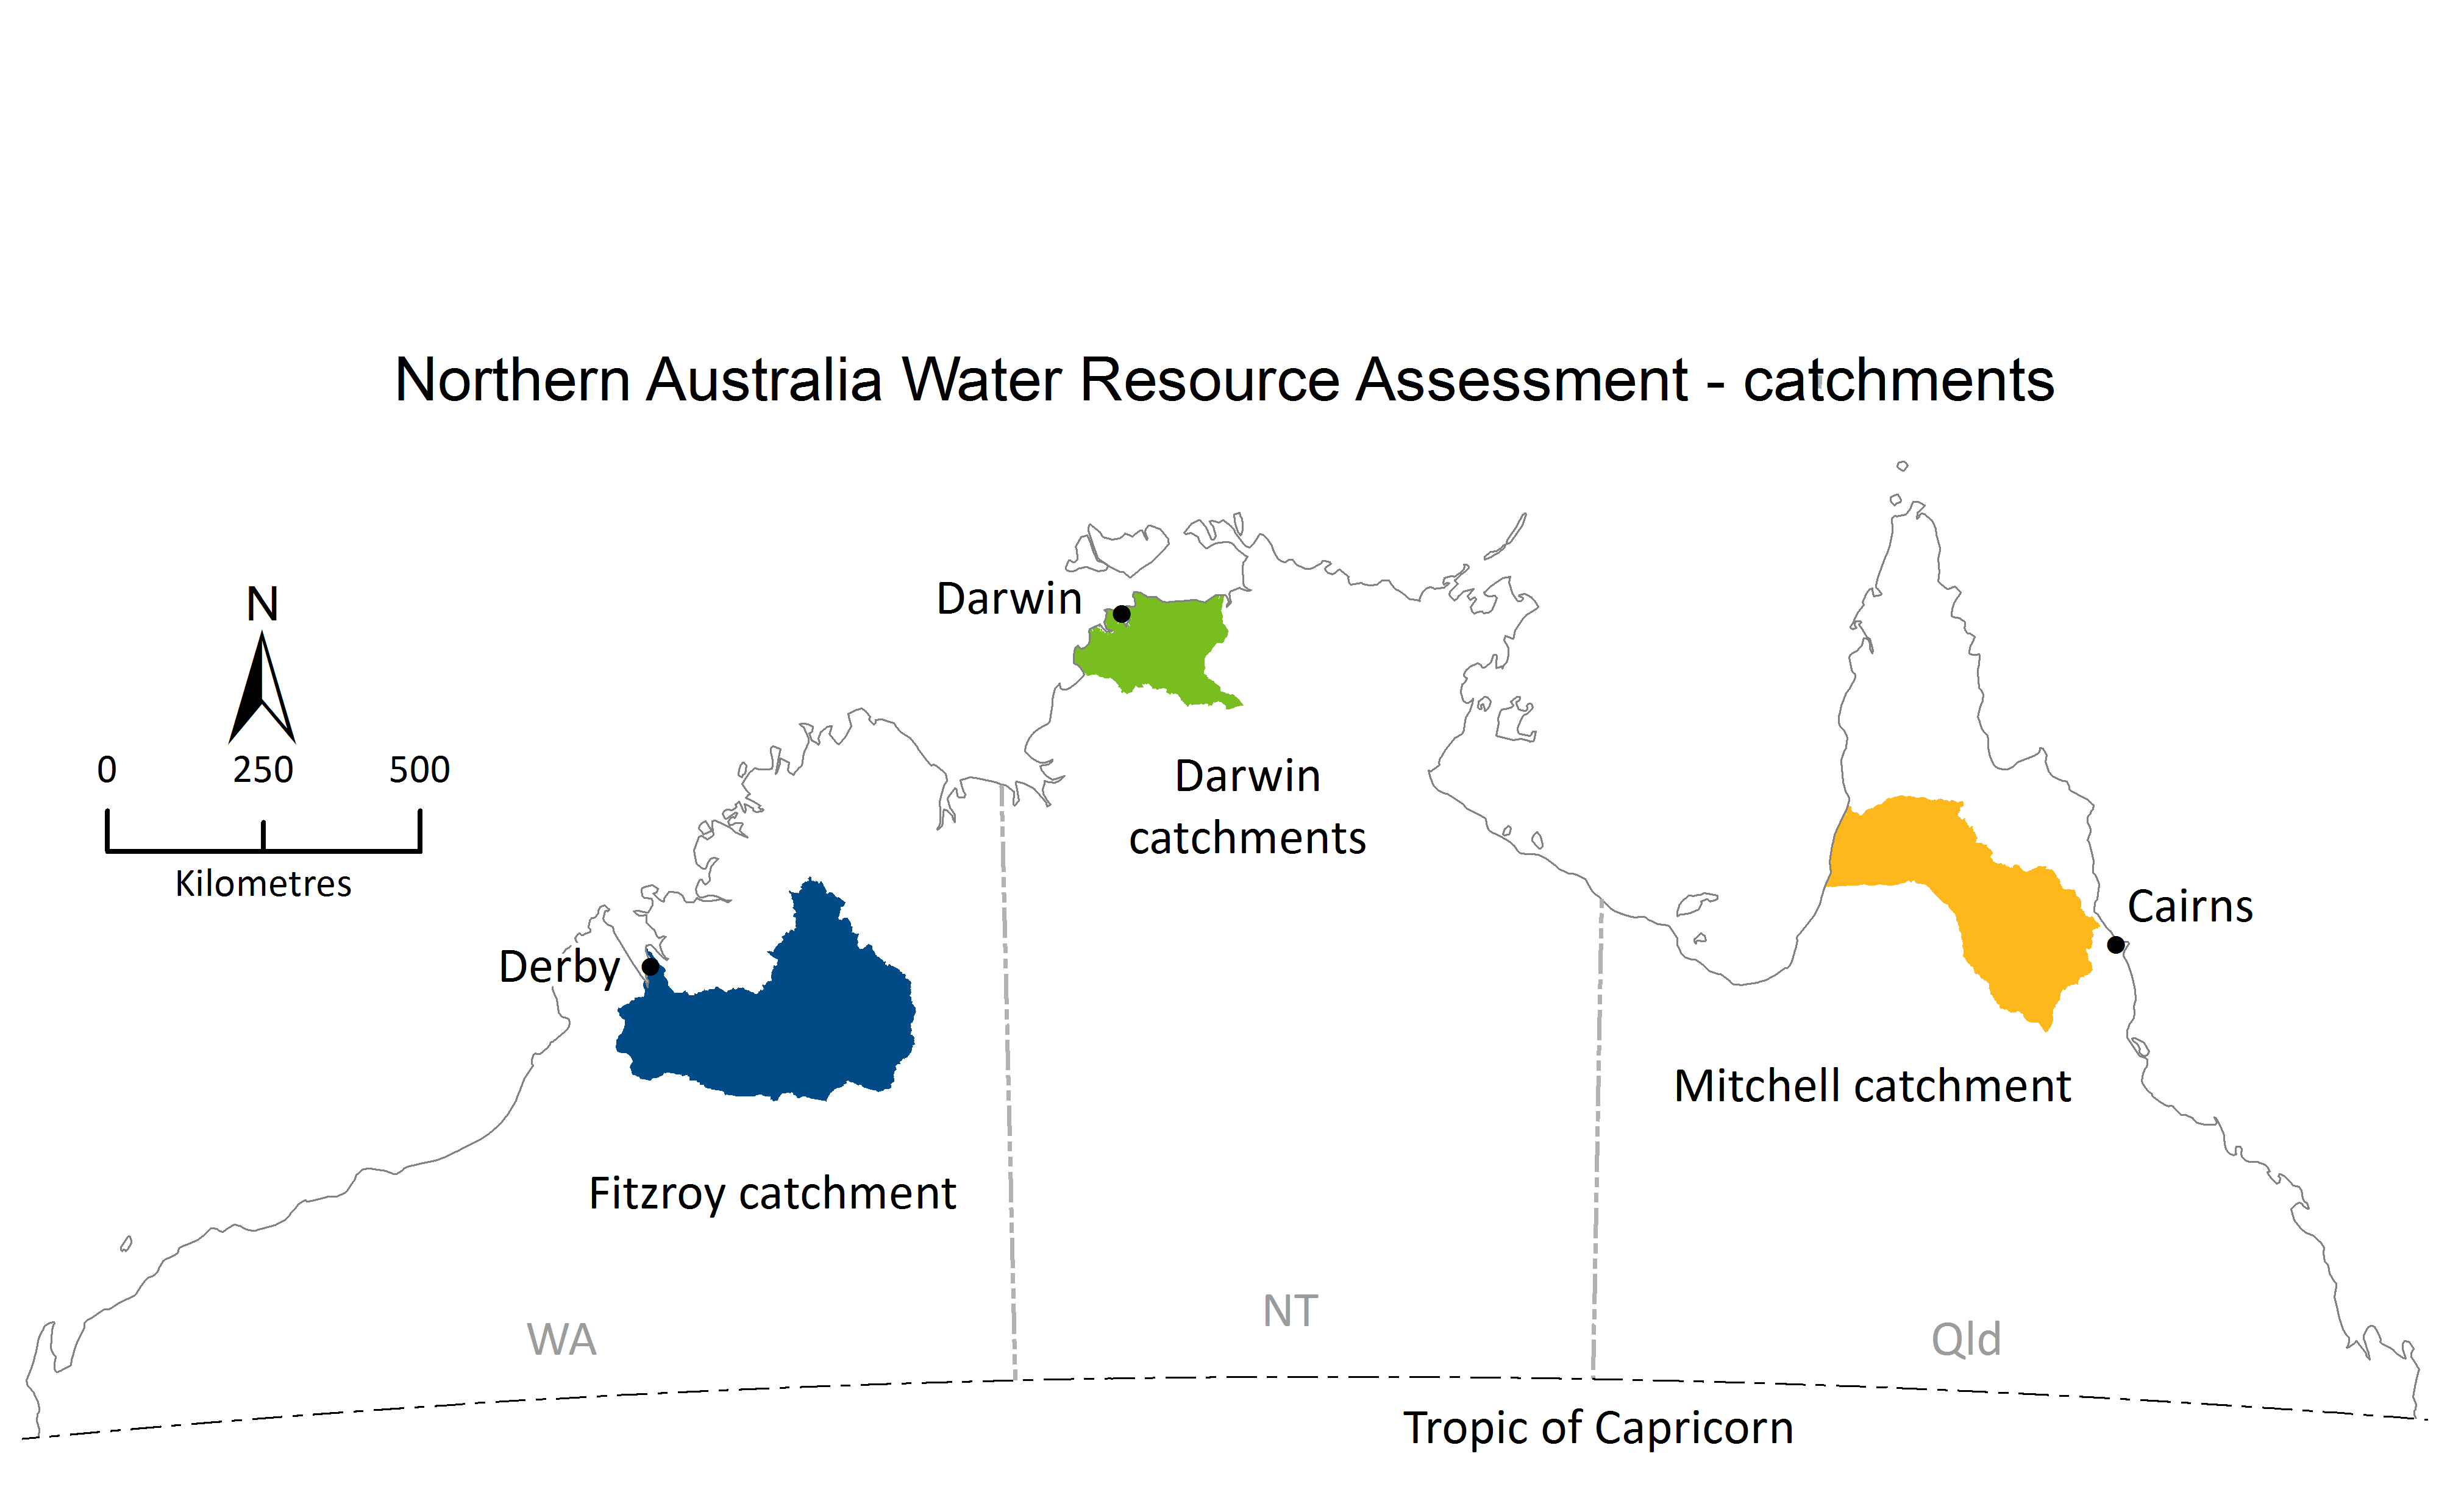 Northern Australia Water Resource Assessment catchments map displaying the Fitzroy, Darwin and Mitchel catchments.